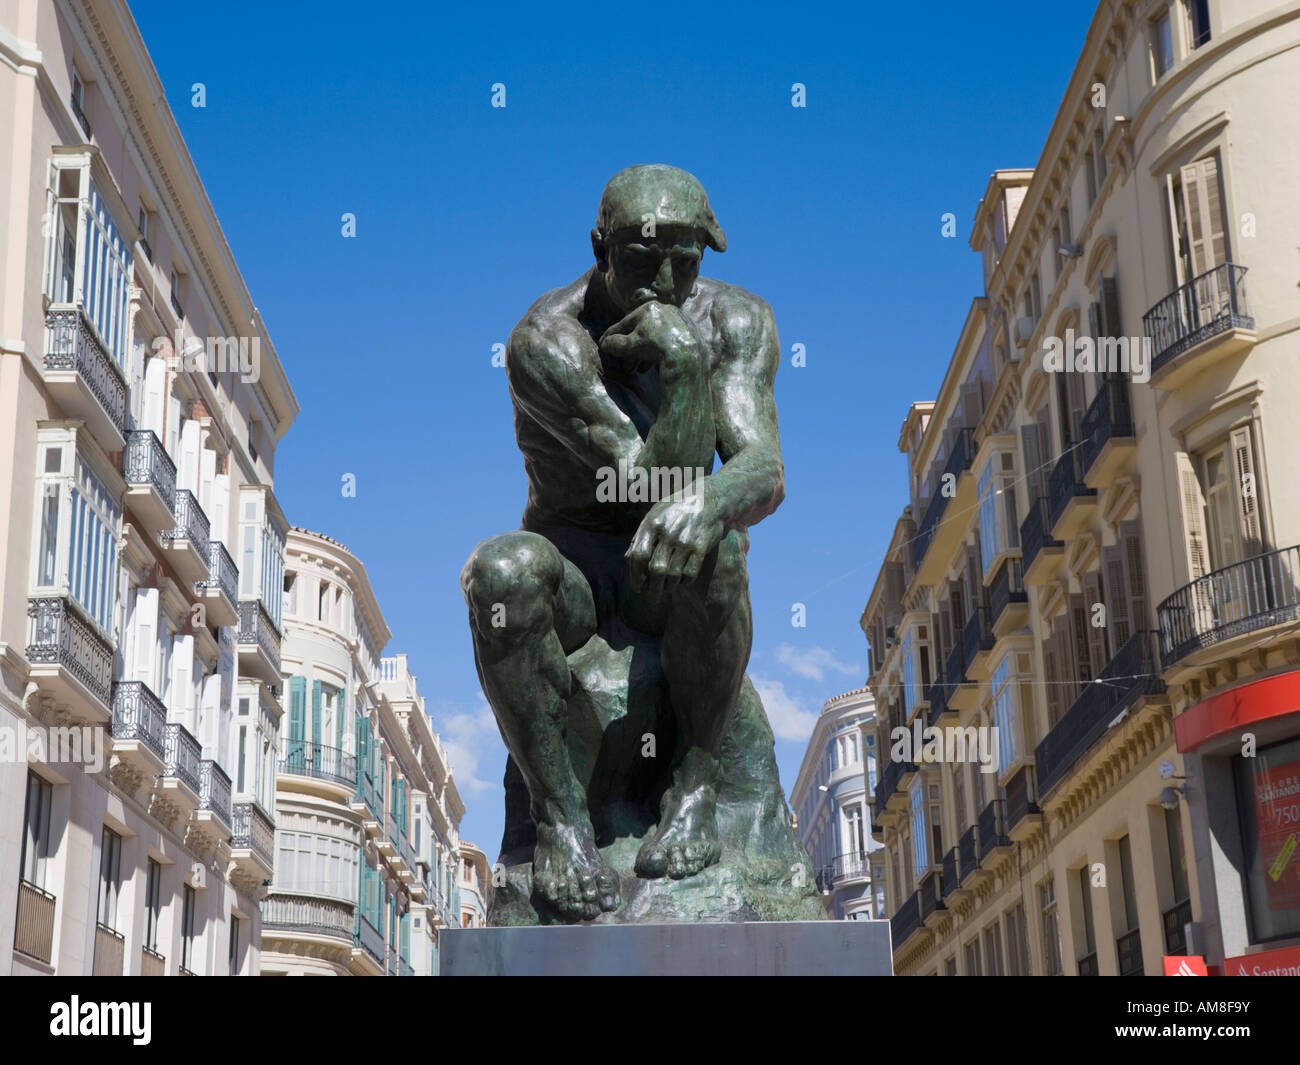 The Thinker by French artist Auguste Rodin on display in Calle Larios Malaga Spain December 2007 - Stock Image